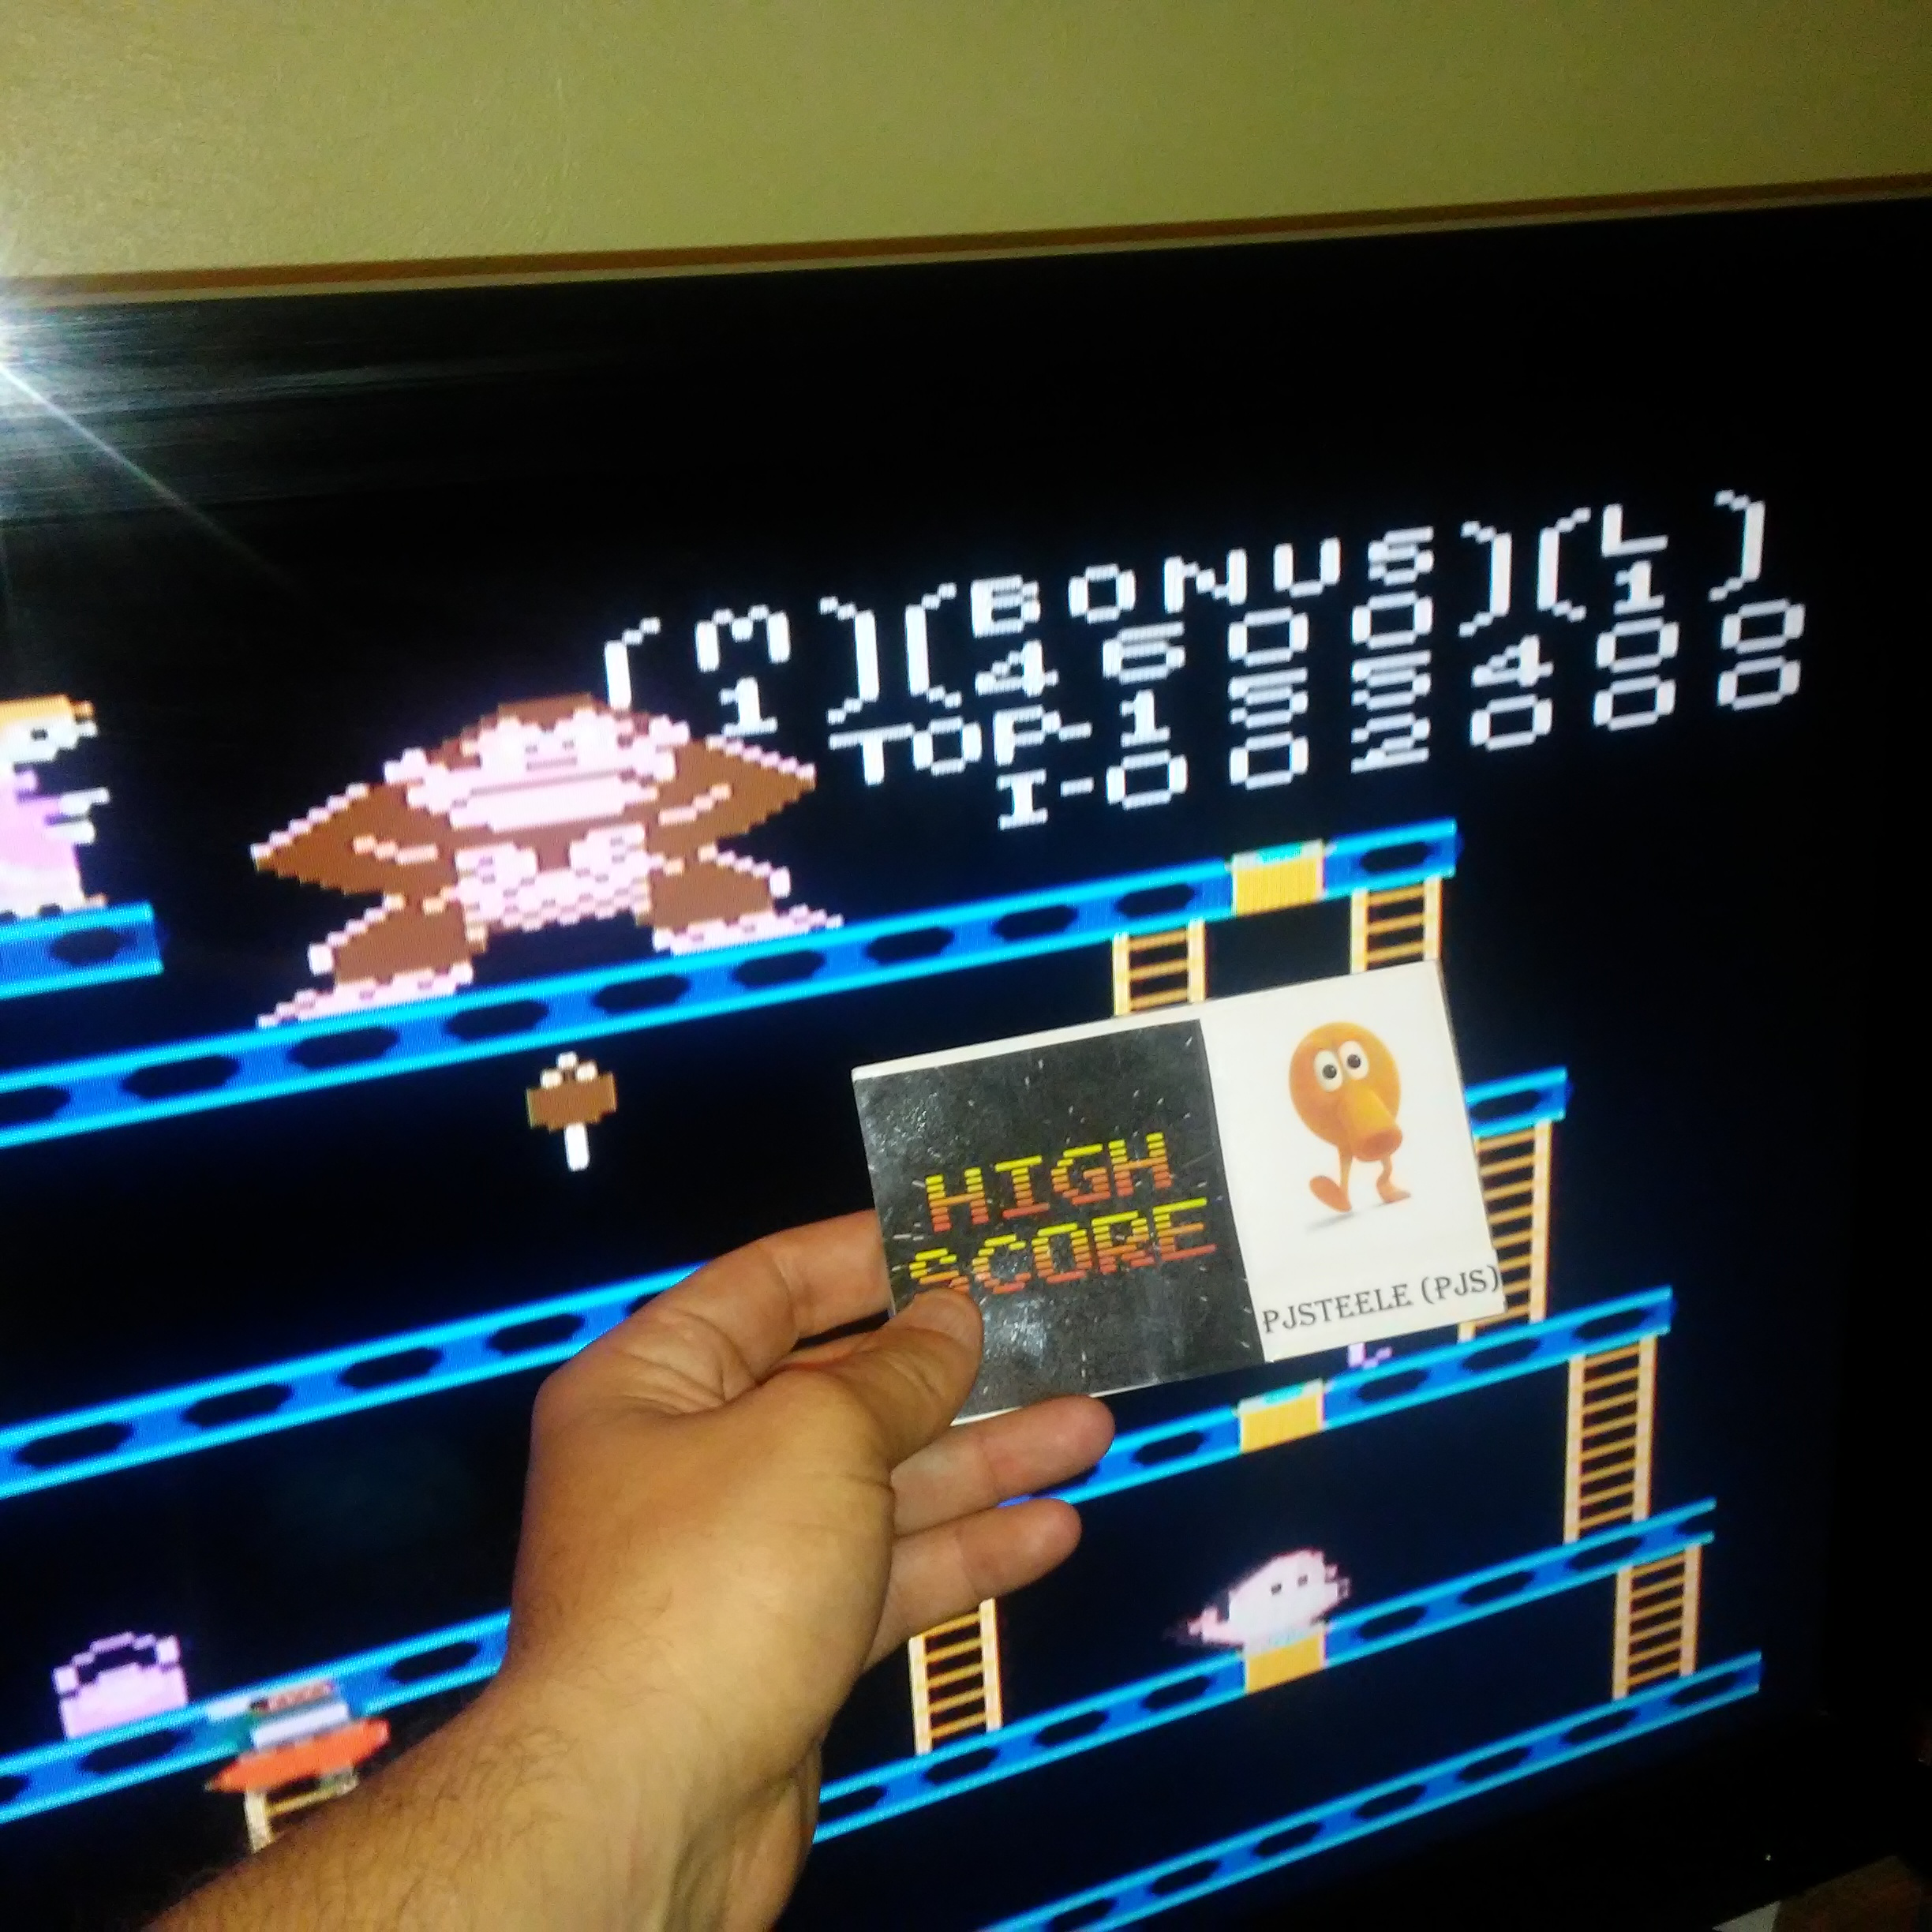 Pjsteele: Donkey Kong: Advanced (Atari 7800 Emulated) 155,400 points on 2017-04-20 09:49:19